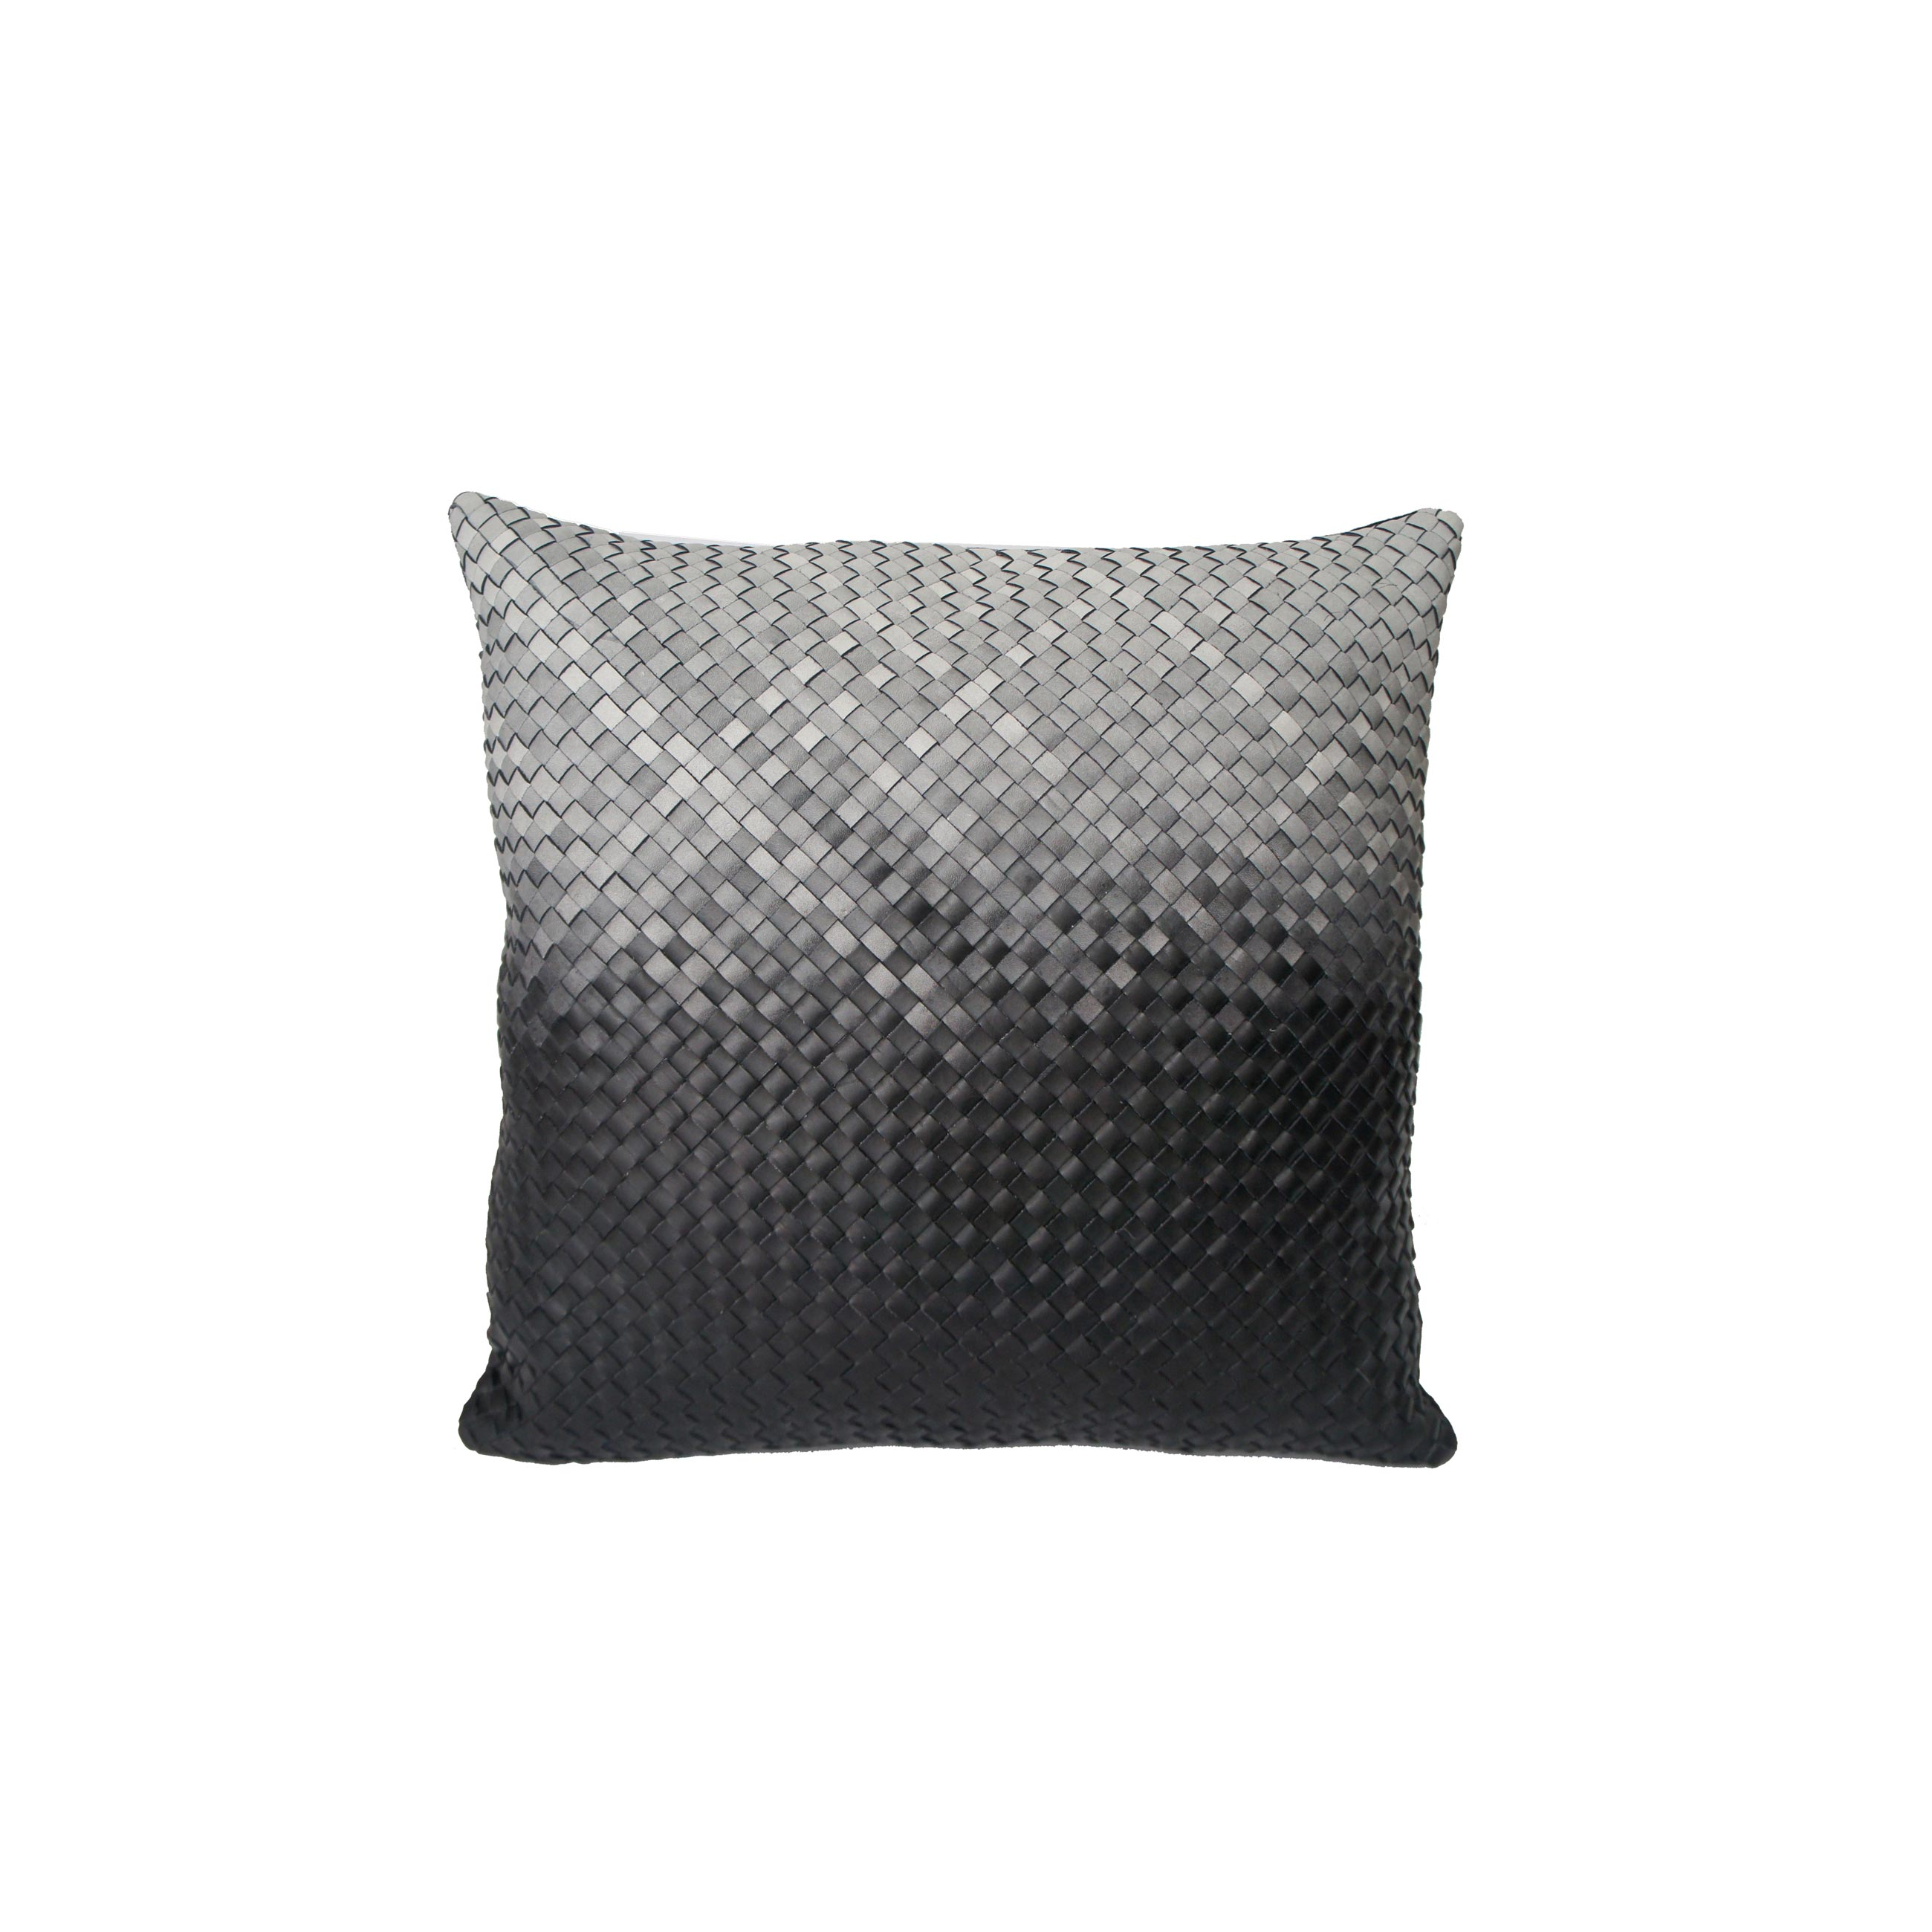 Mosaico Degrade Woven Leather Cushion Large - The Large Mosaico Degrade Woven Leather Cushion is designed to complement an ambient with a natural and sophisticated feeling. The woven handmade leather cushions are specially manufactured in Brazil using an exclusive treated leather that brings the soft feel touch to every single piece. Cushion pads can be customised in a range of ethically sourced feathers, eco-friendly wool and allergy-friendly fibres. The fillings are sourced for their superior quality and properties to make only the finest quality cushion pads.  Elisa Atheniense Home Cushions are sold in pairs only, all cushions are available in two sizesBespoke sizes are also available under project request as well as colours.  | Matter of Stuff